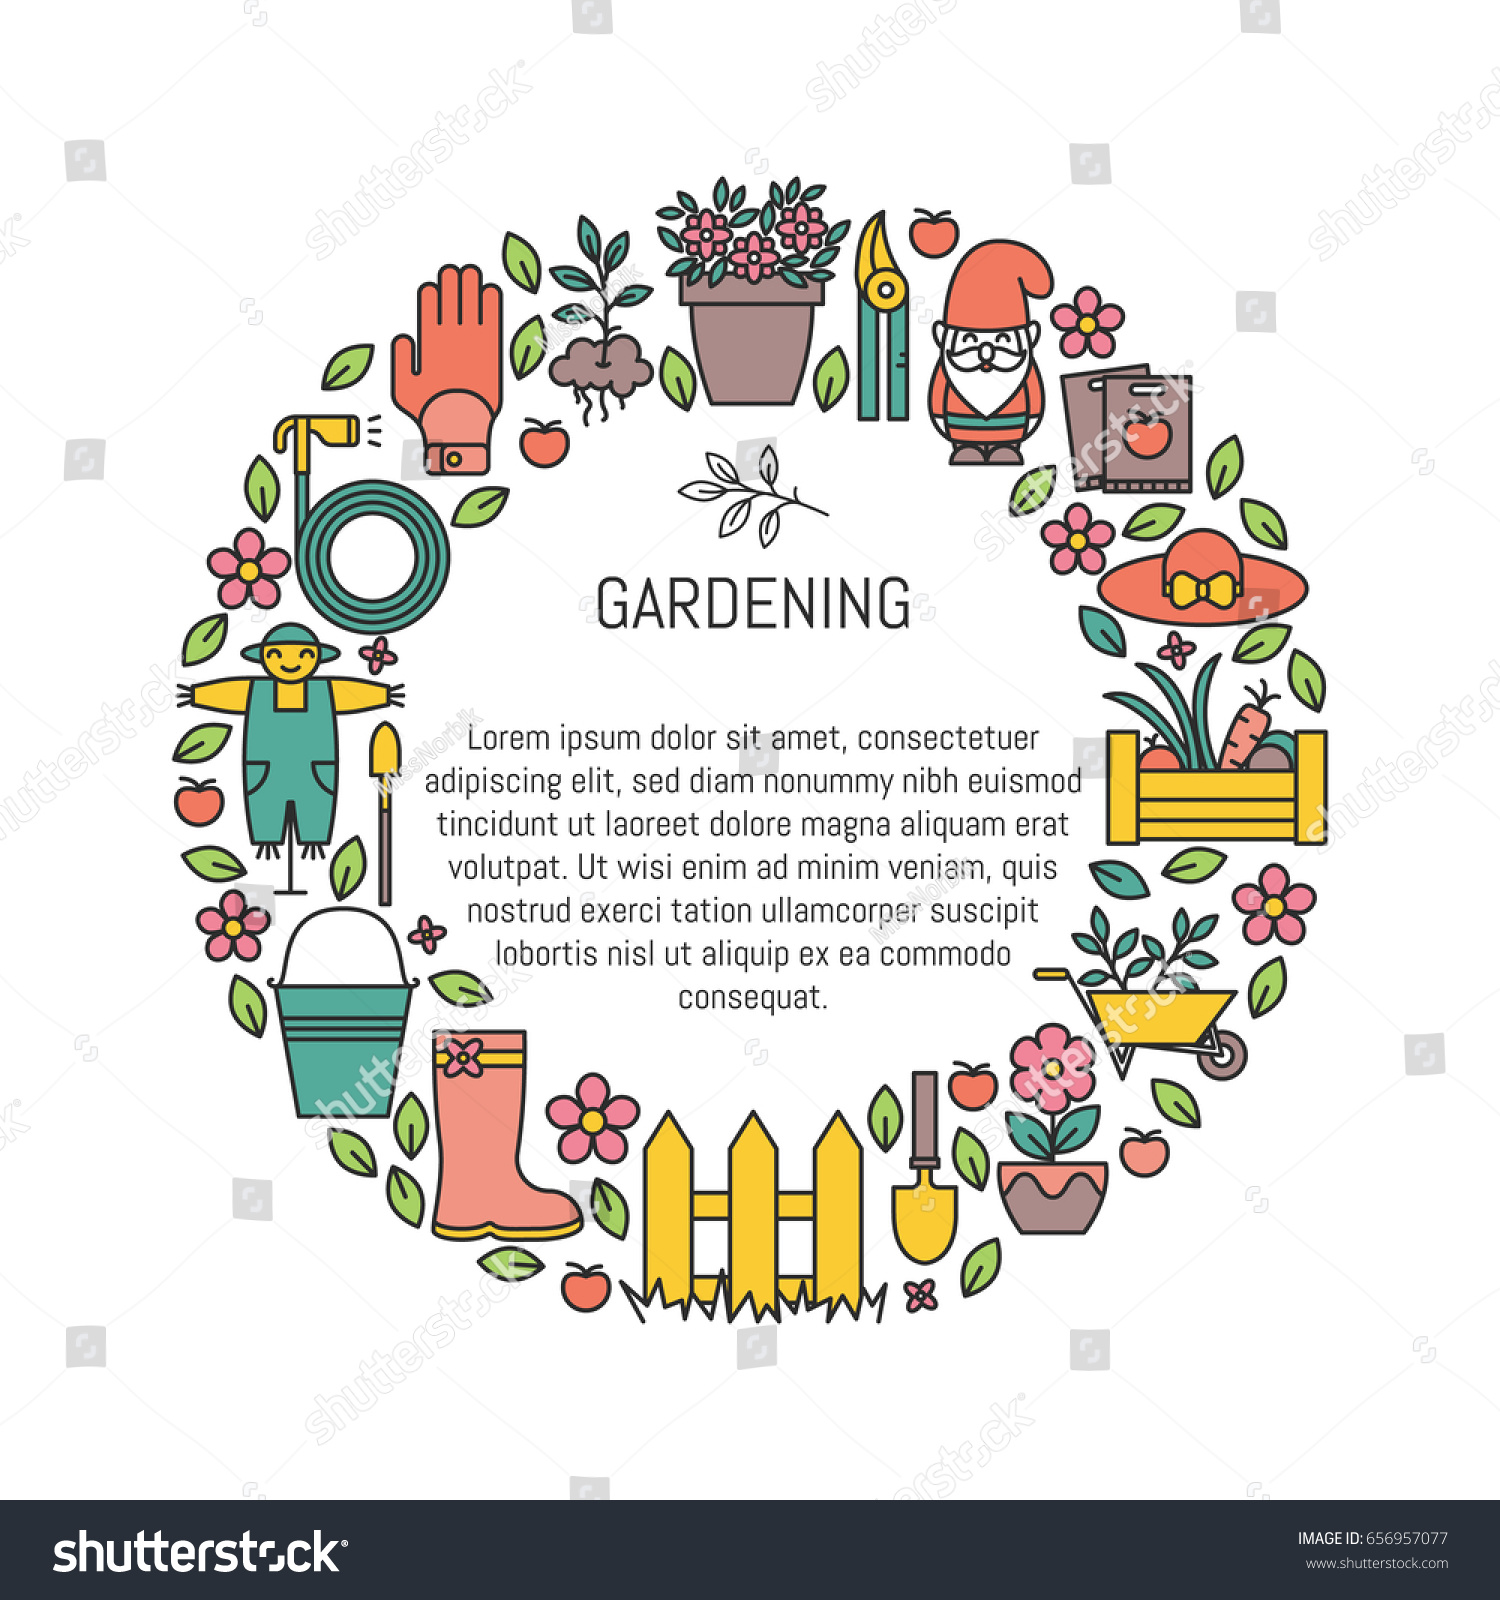 Vector poster gardening planting symbols trendy stock vector vector poster with gardening planting symbols in trendy linear style garden equipment poster biocorpaavc Images